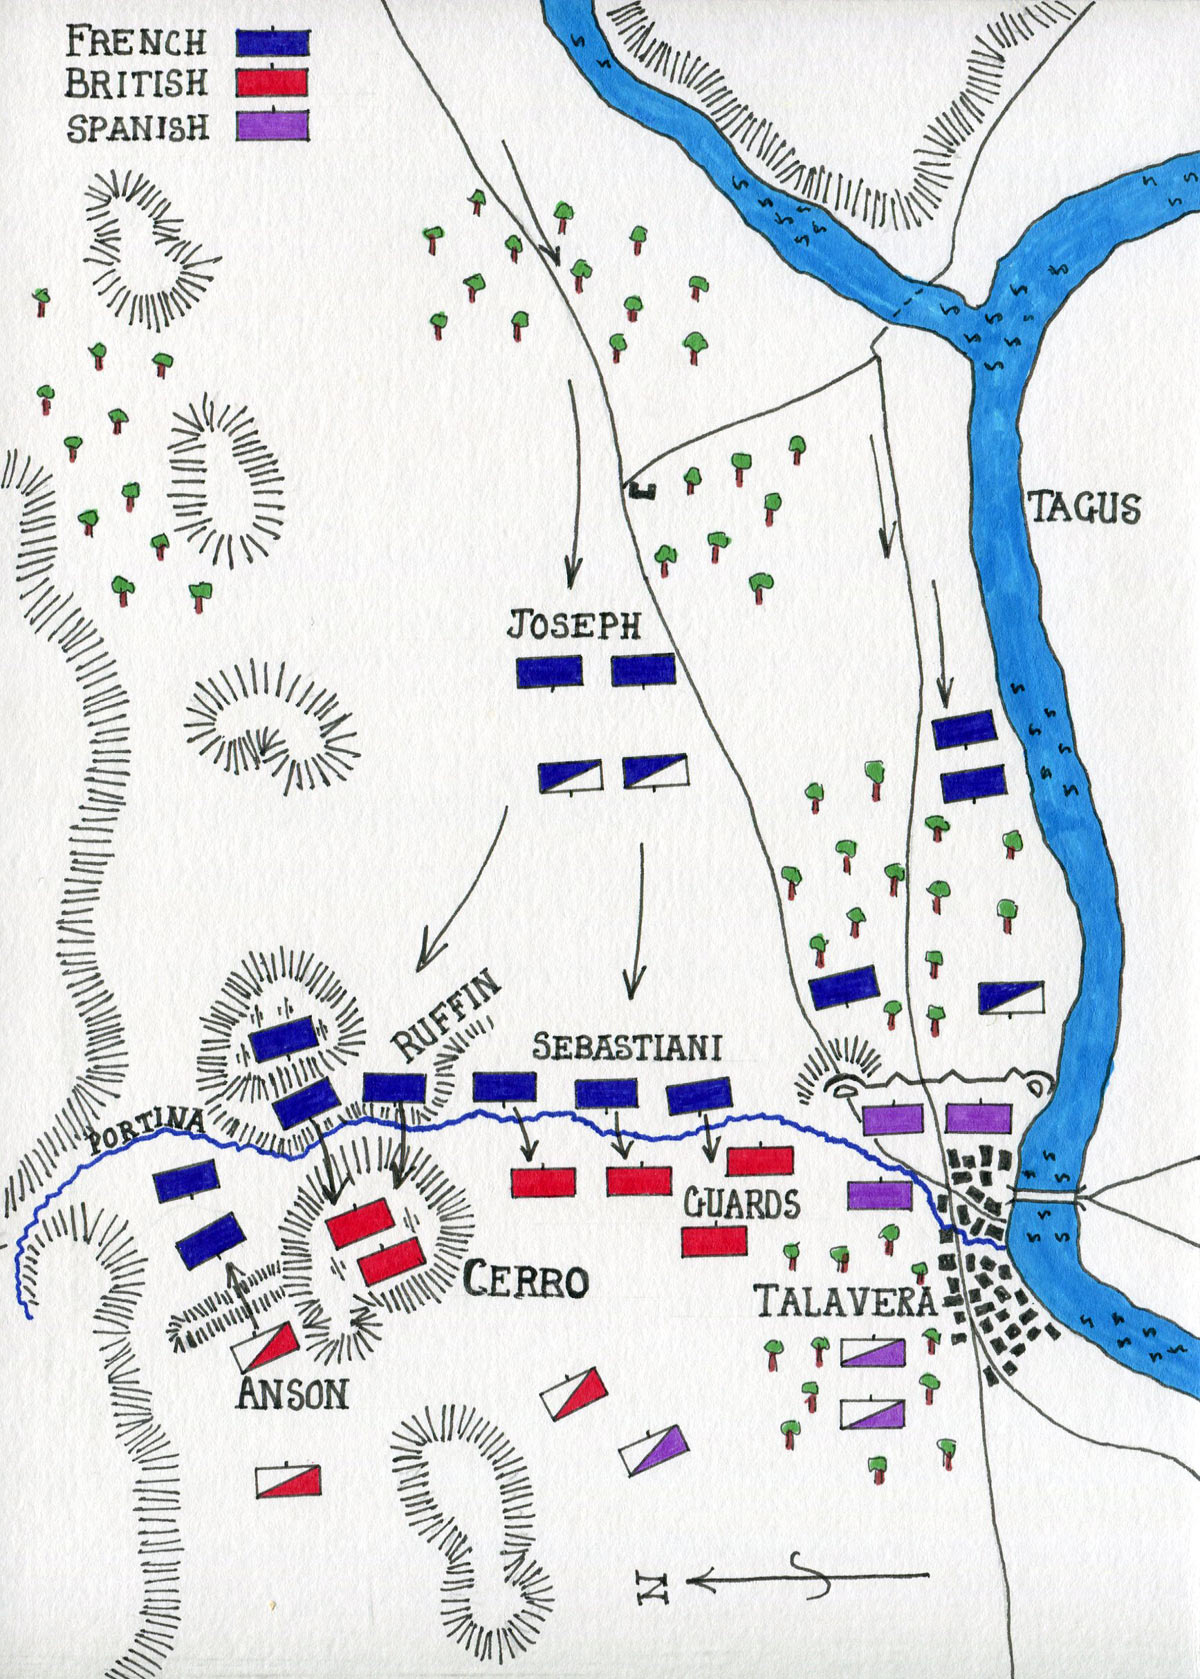 Map of the Battle of Talavera on 28th July 1809 in the Peninsular War: map by John Fawkes